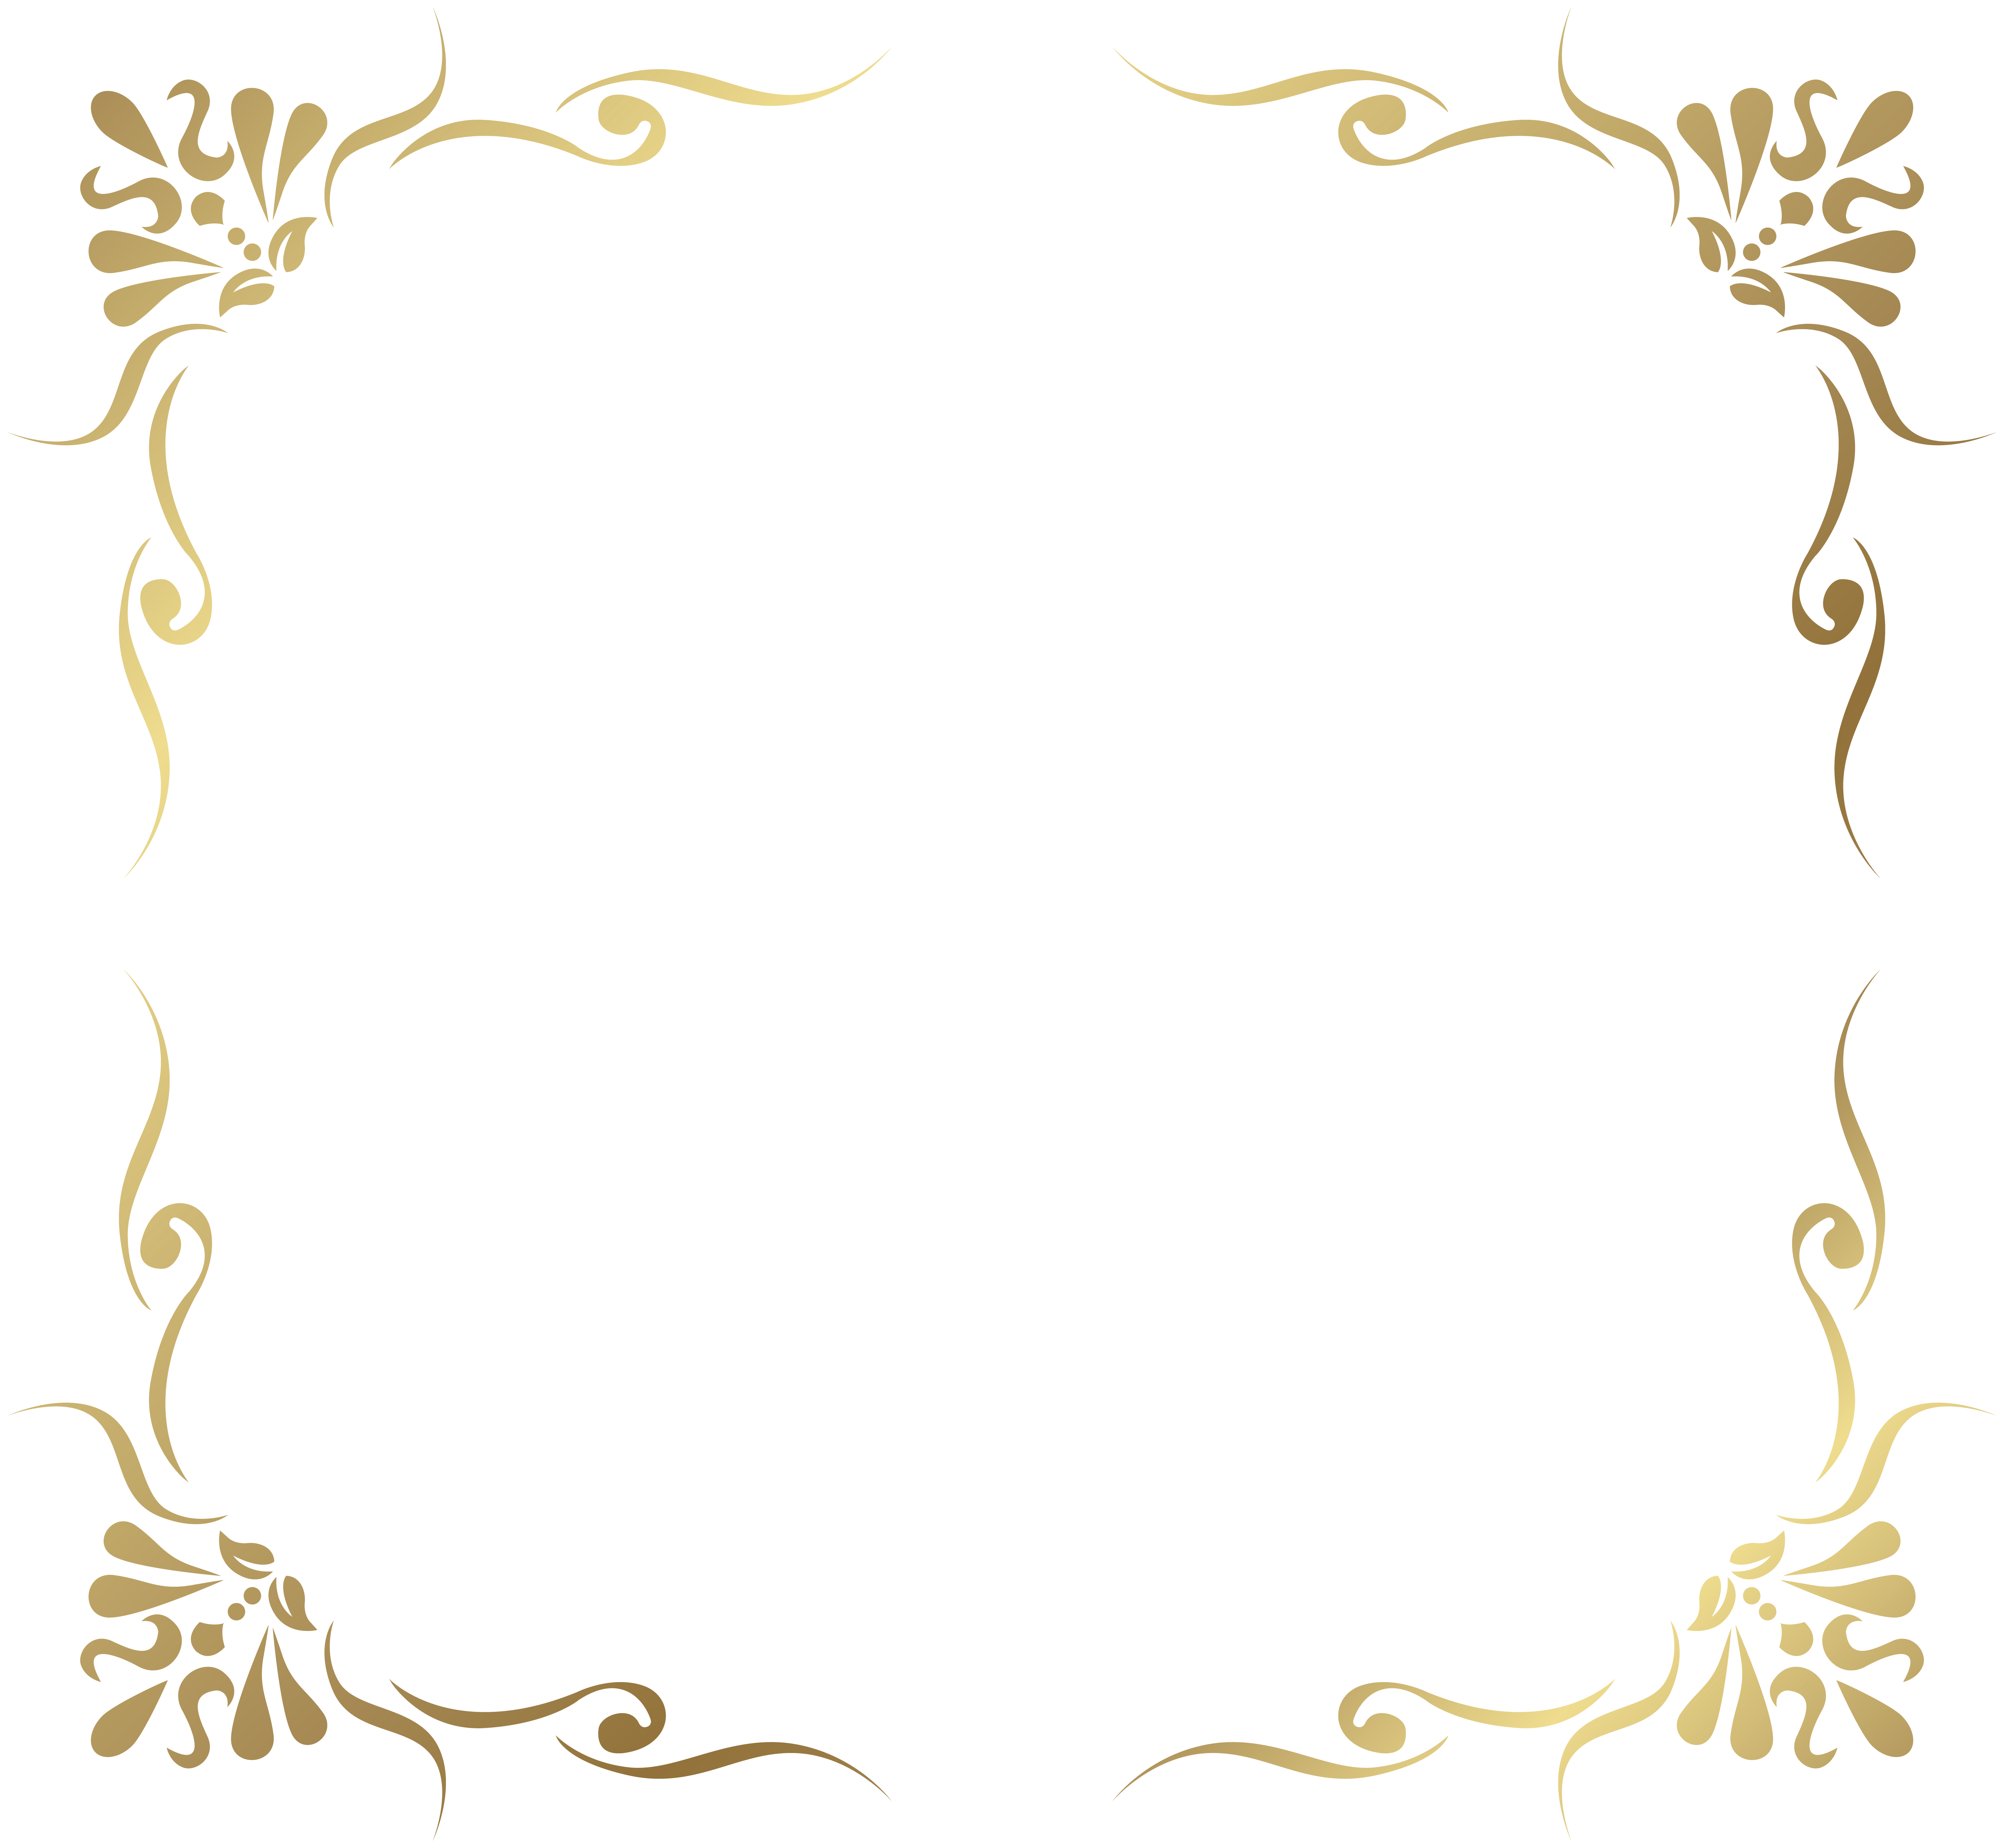 Snowflake clipart transparent background picture transparent download Transparent Decorative Frame Border PNG Picture | Gallery ... picture transparent download